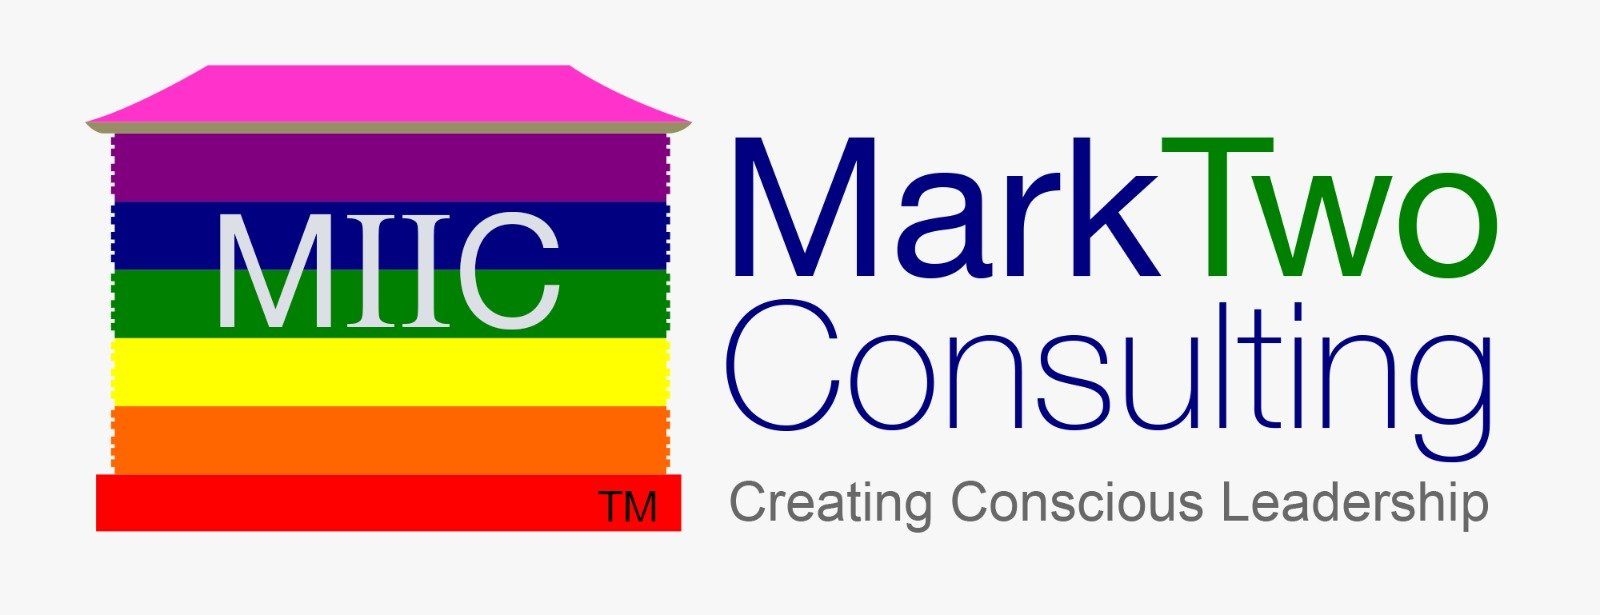 mark-two-consulting-logo